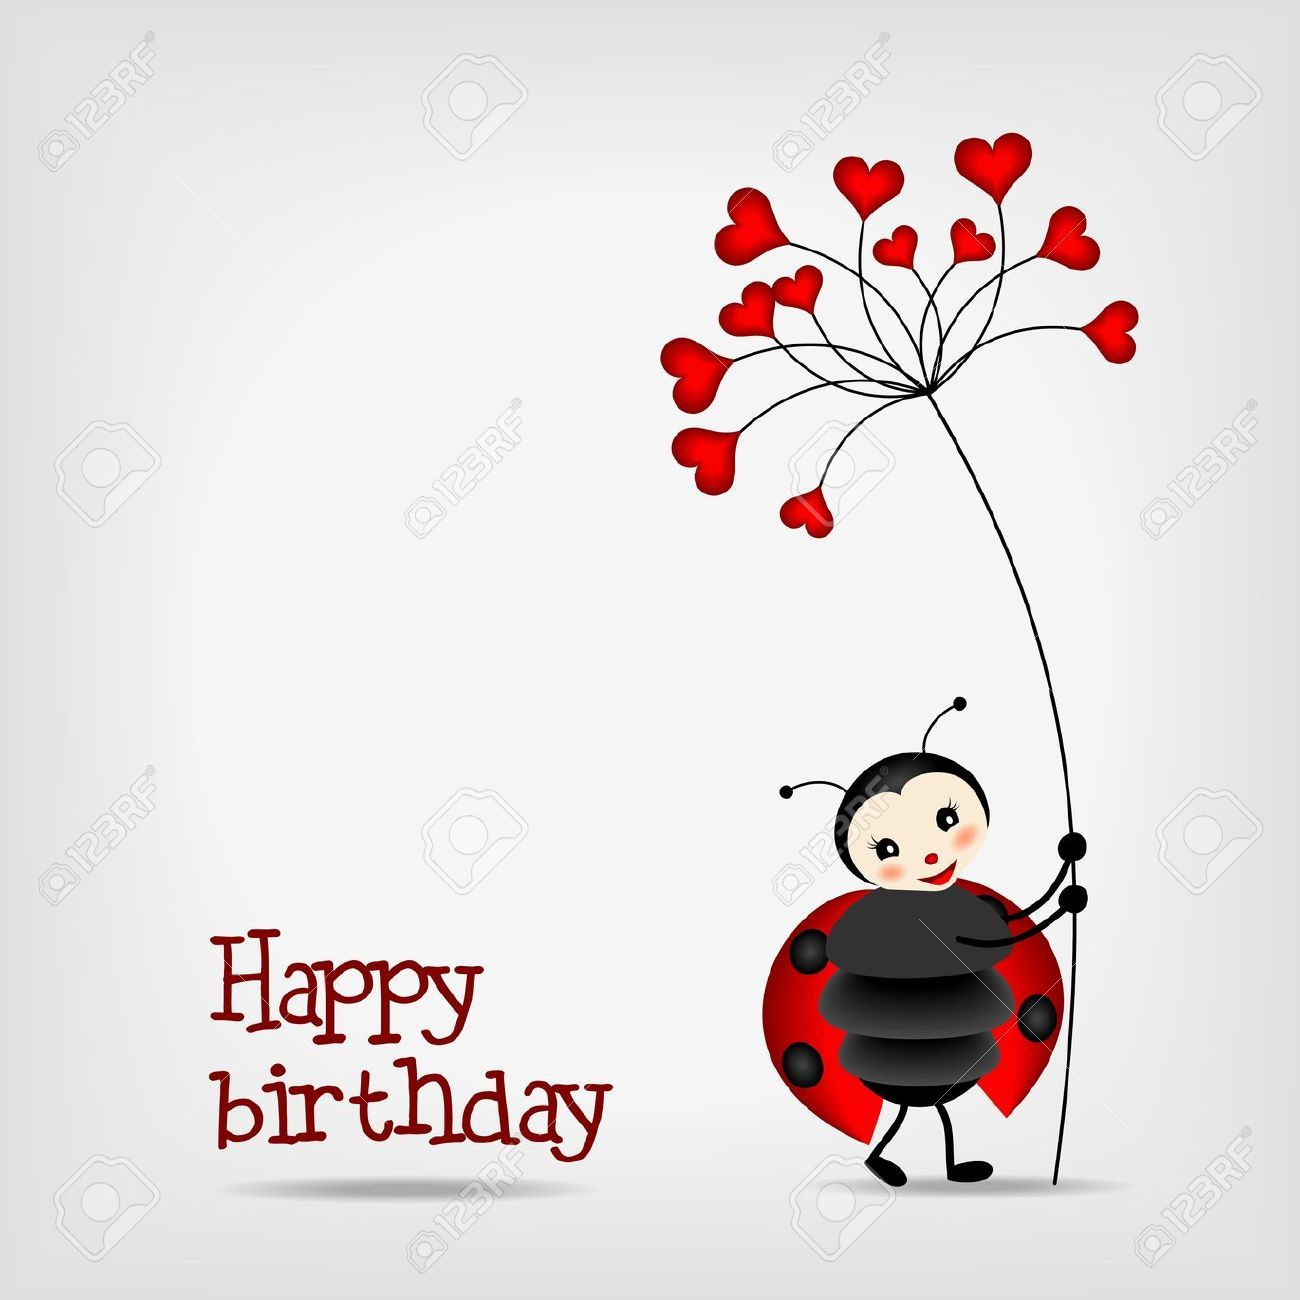 Cute Ladybug With Red Flower Birthday Card Vector Illustration – Ladybug Birthday Cards